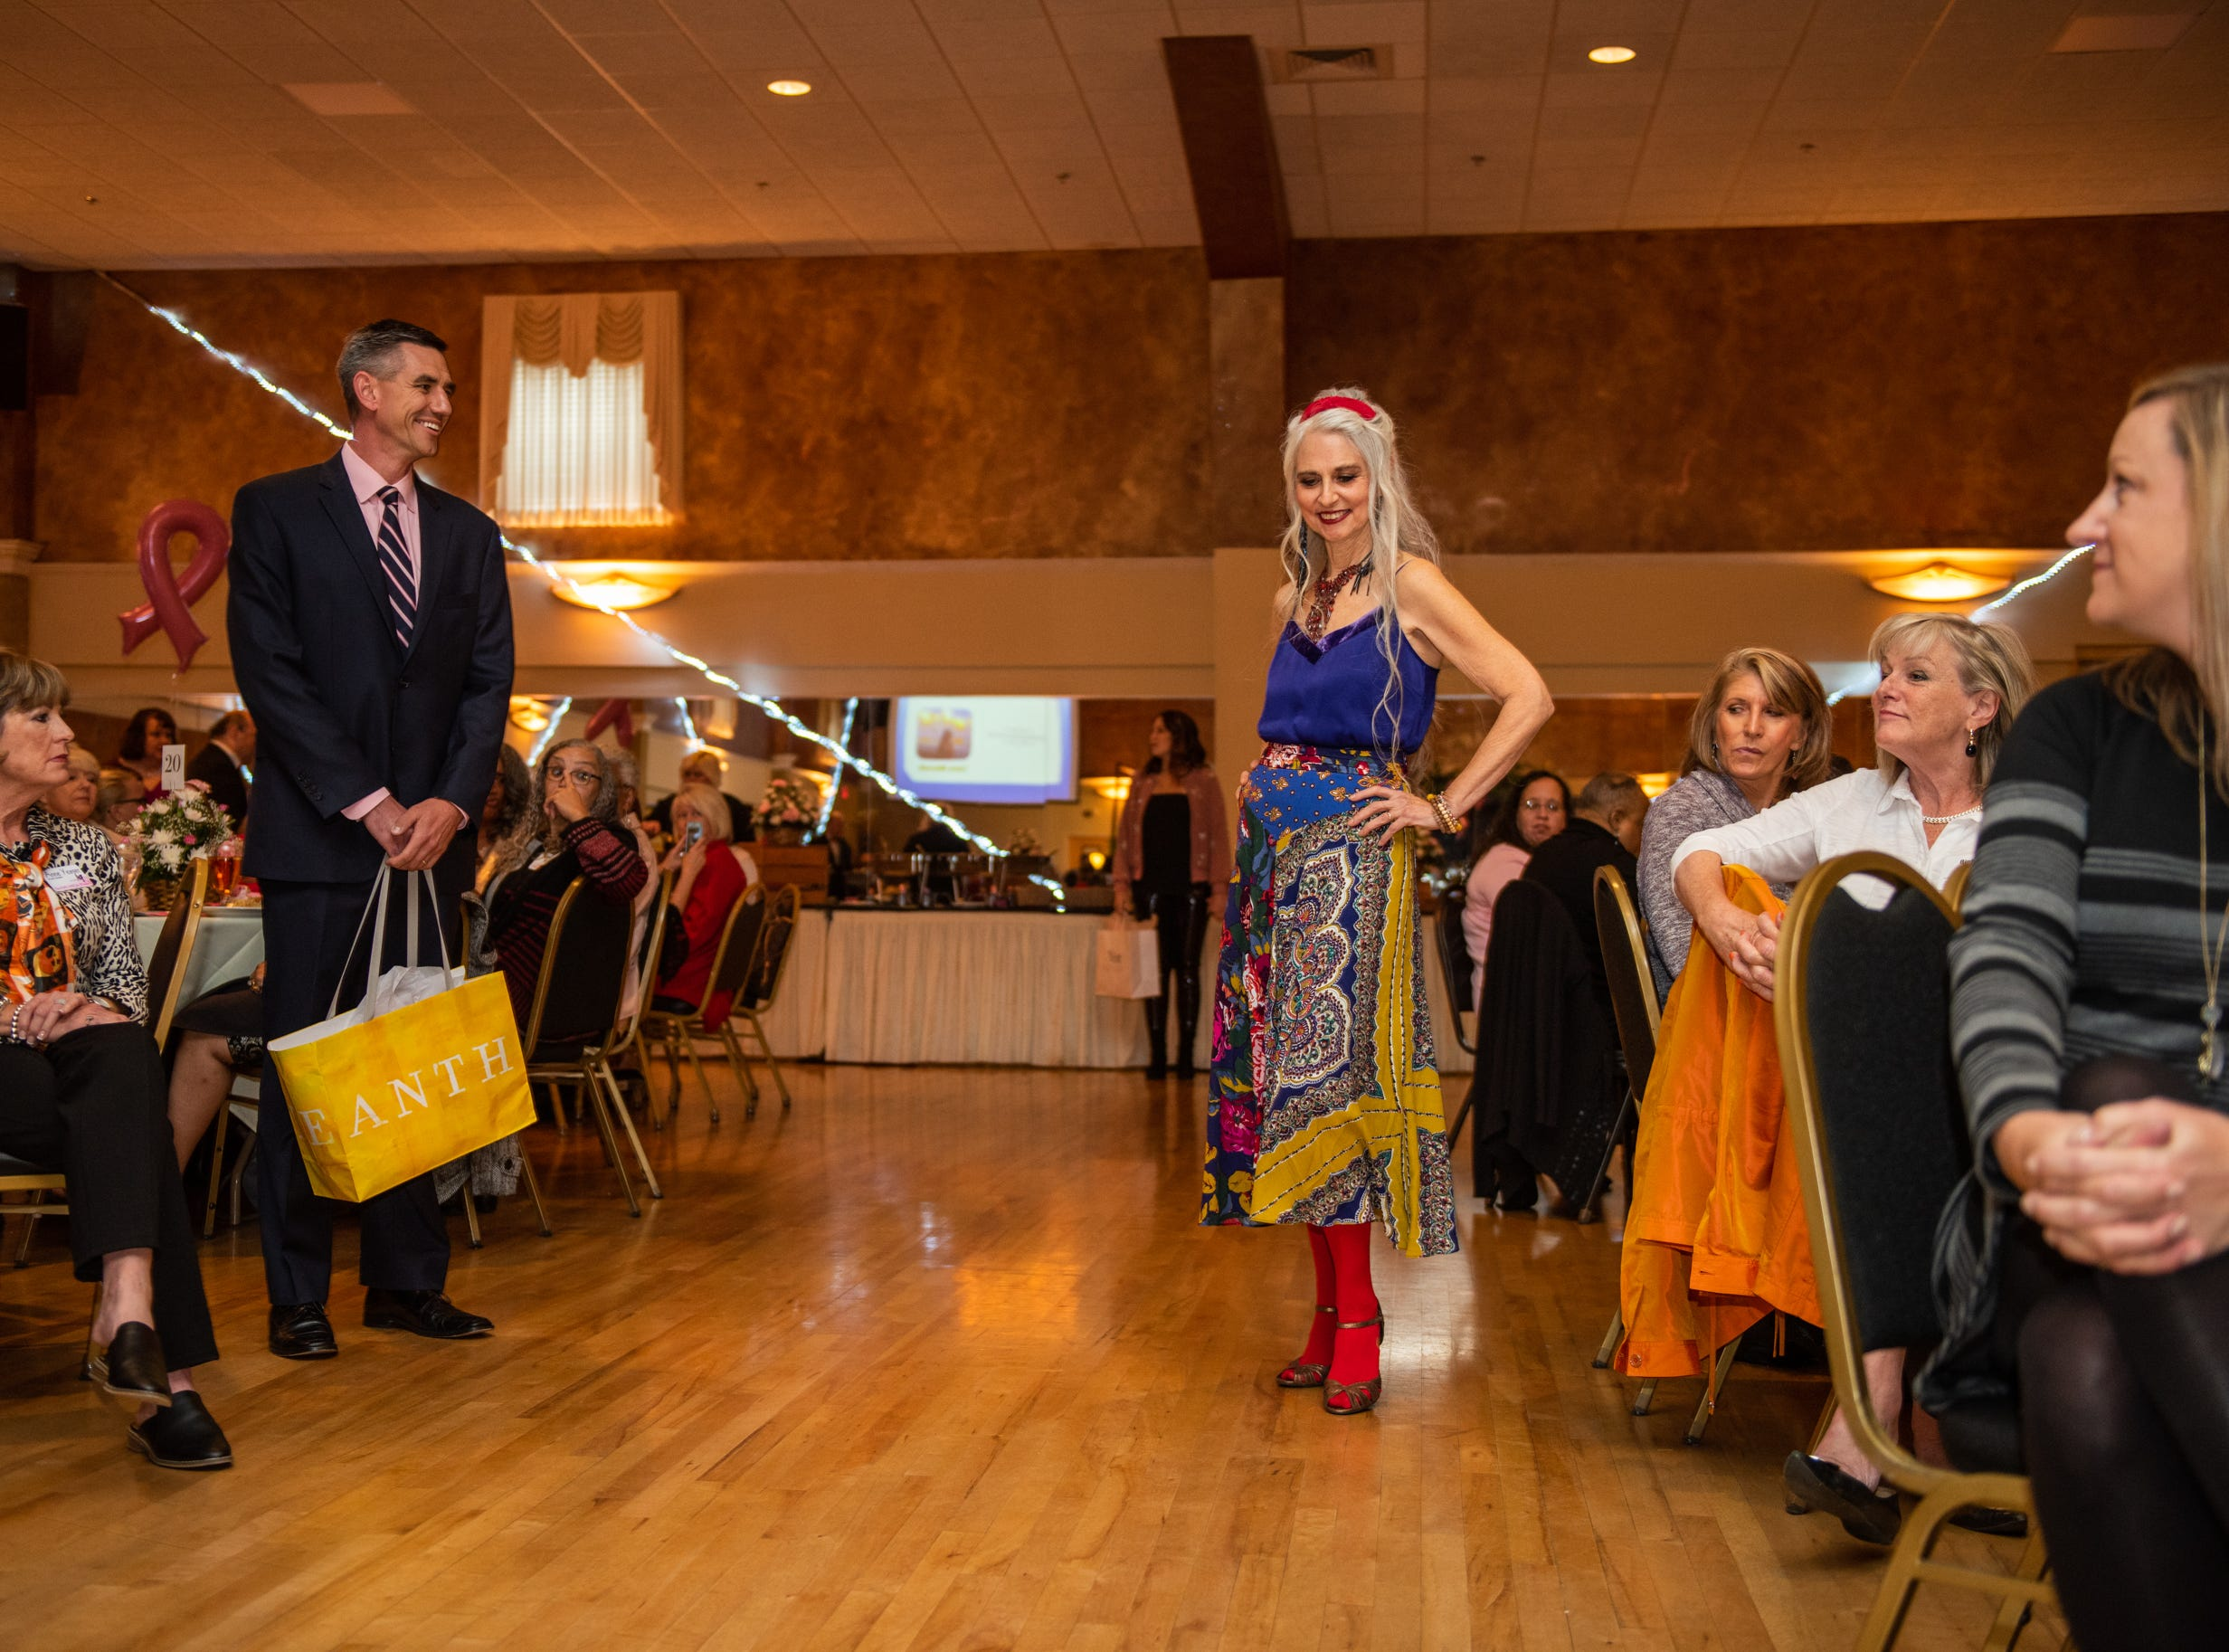 Breast cancer survivor Laura Miklowitz of Hendersonville models an outfit at the Here's Hope Fashion Show fundraiser for the Hope Chest for Women on Oct. 20, 2018, at the Asheville Event Centre.